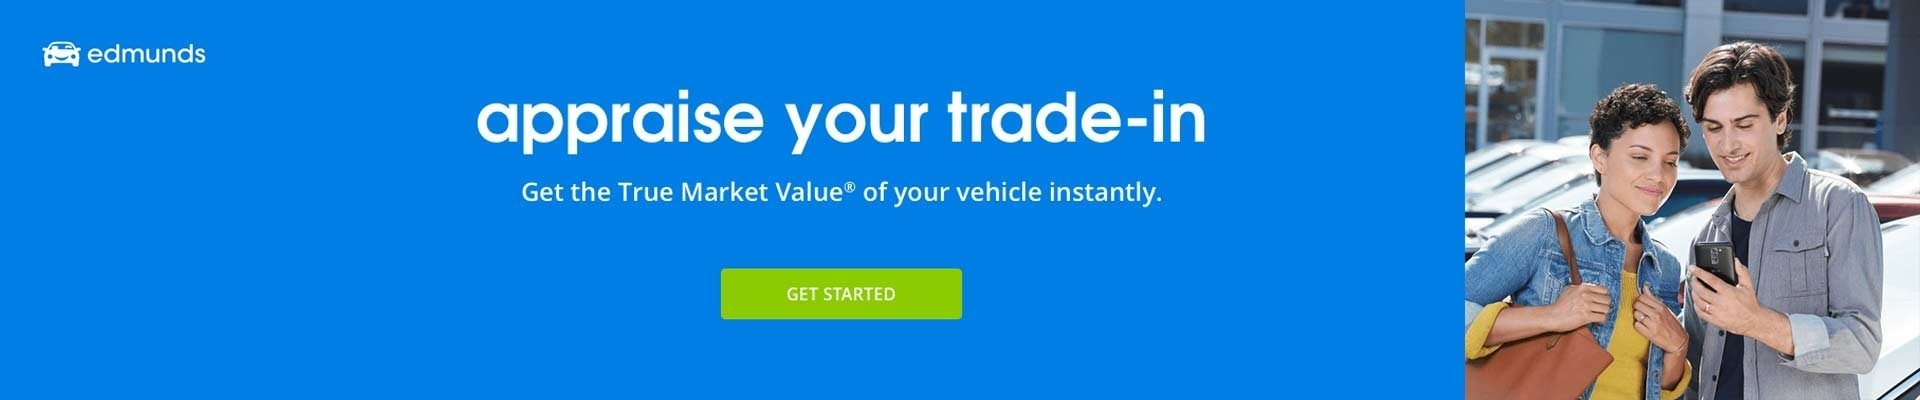 appraise your trade with edmunds